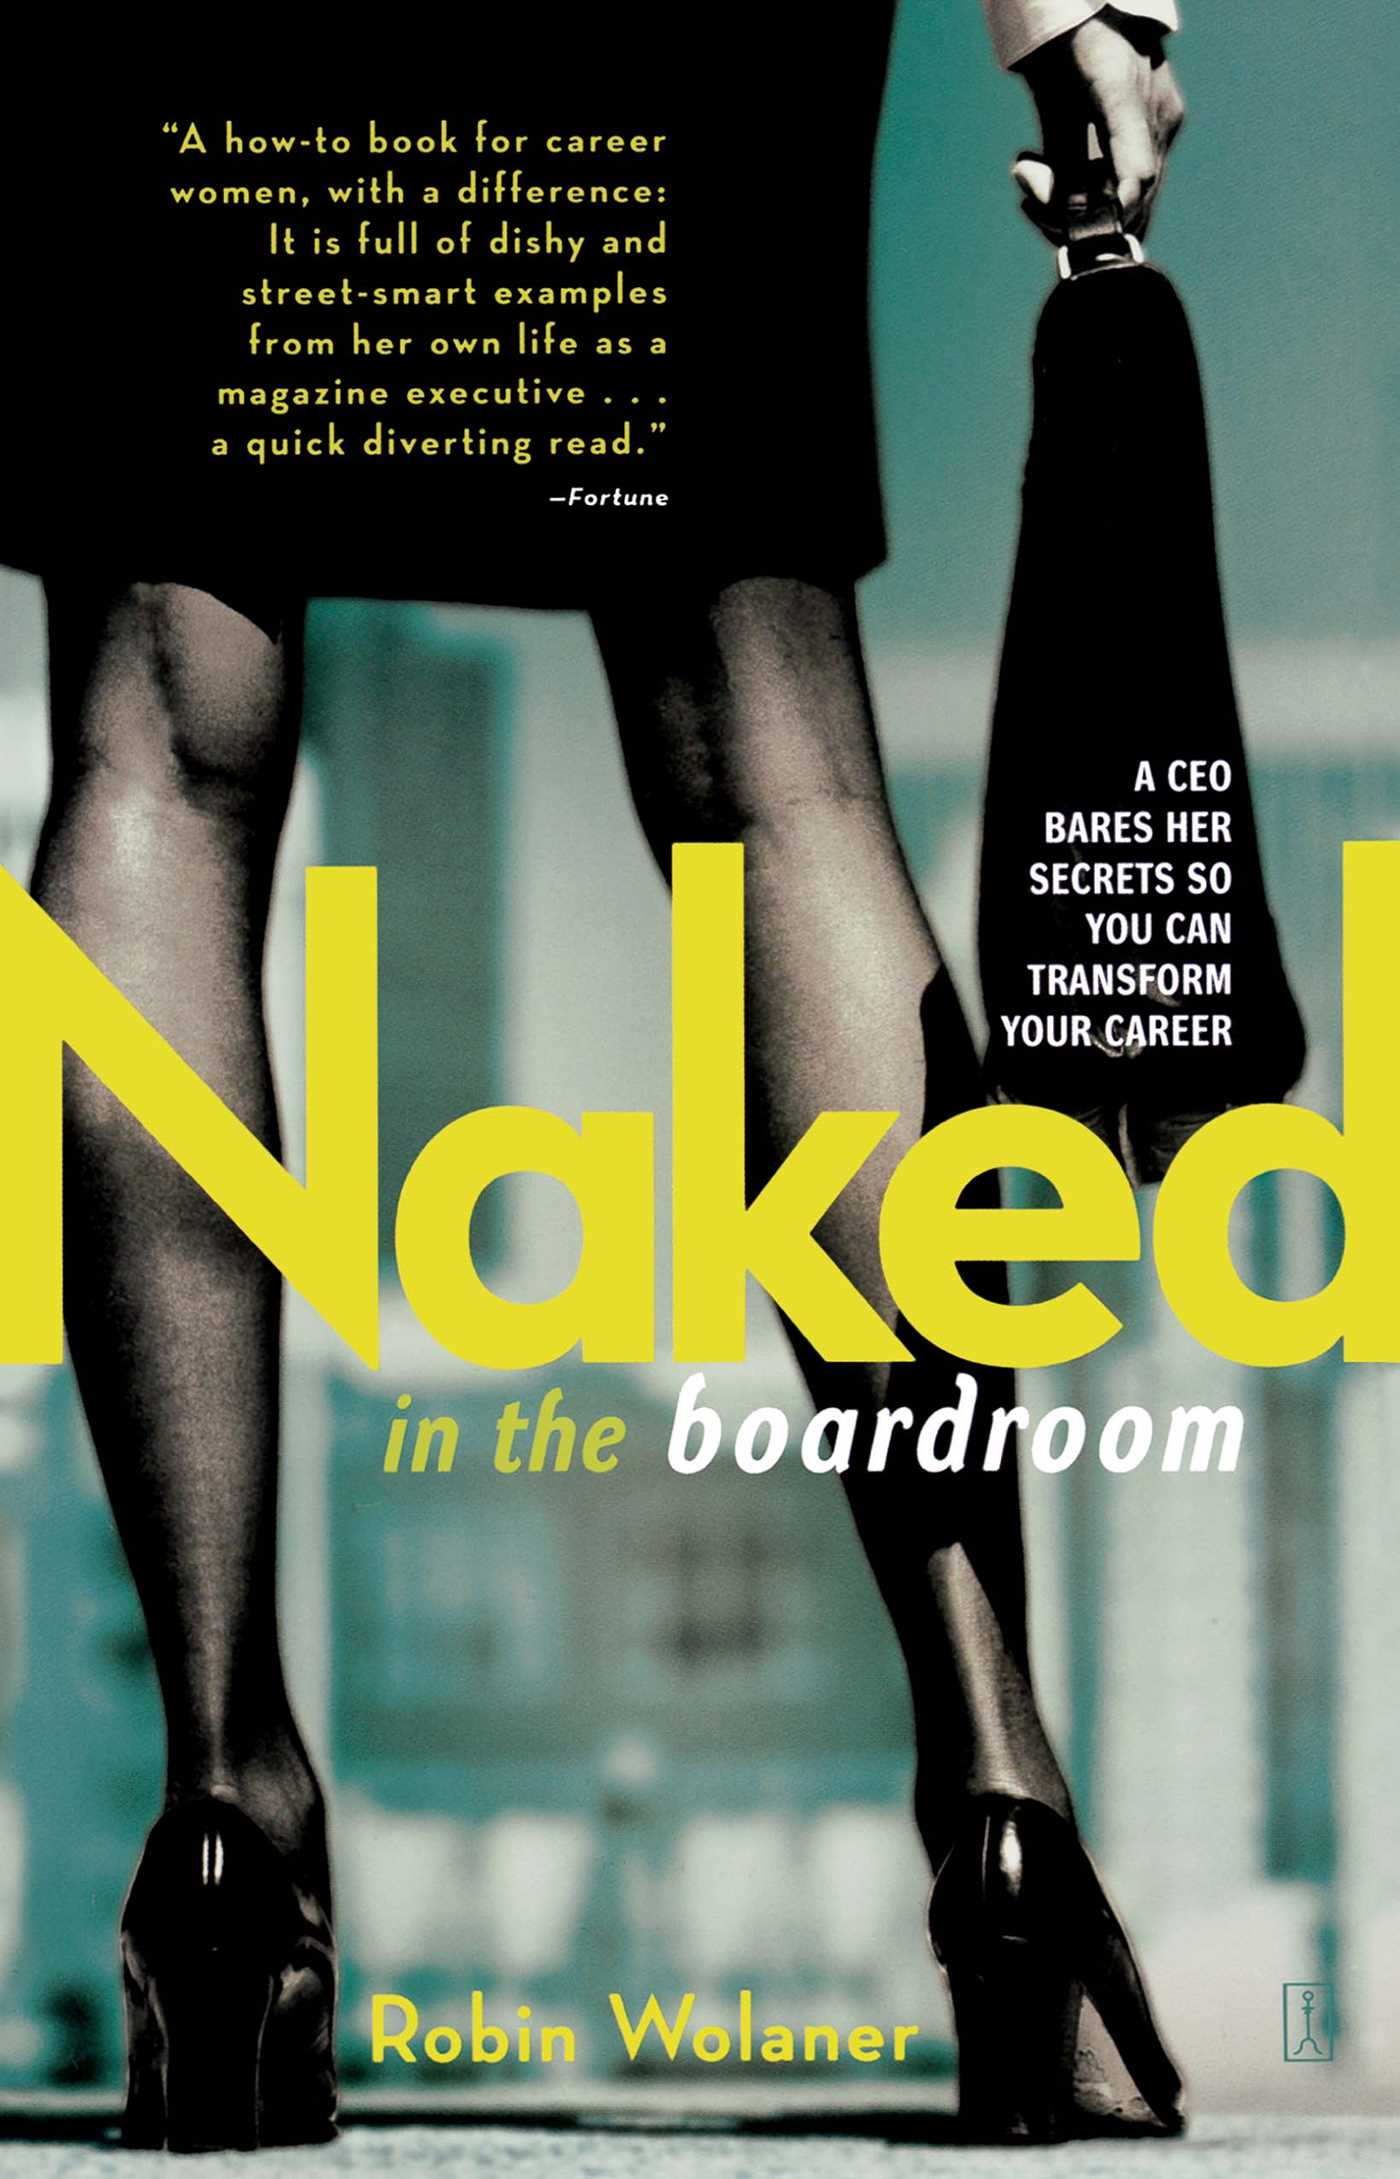 Naked in the boardroom 9780743282840 hr